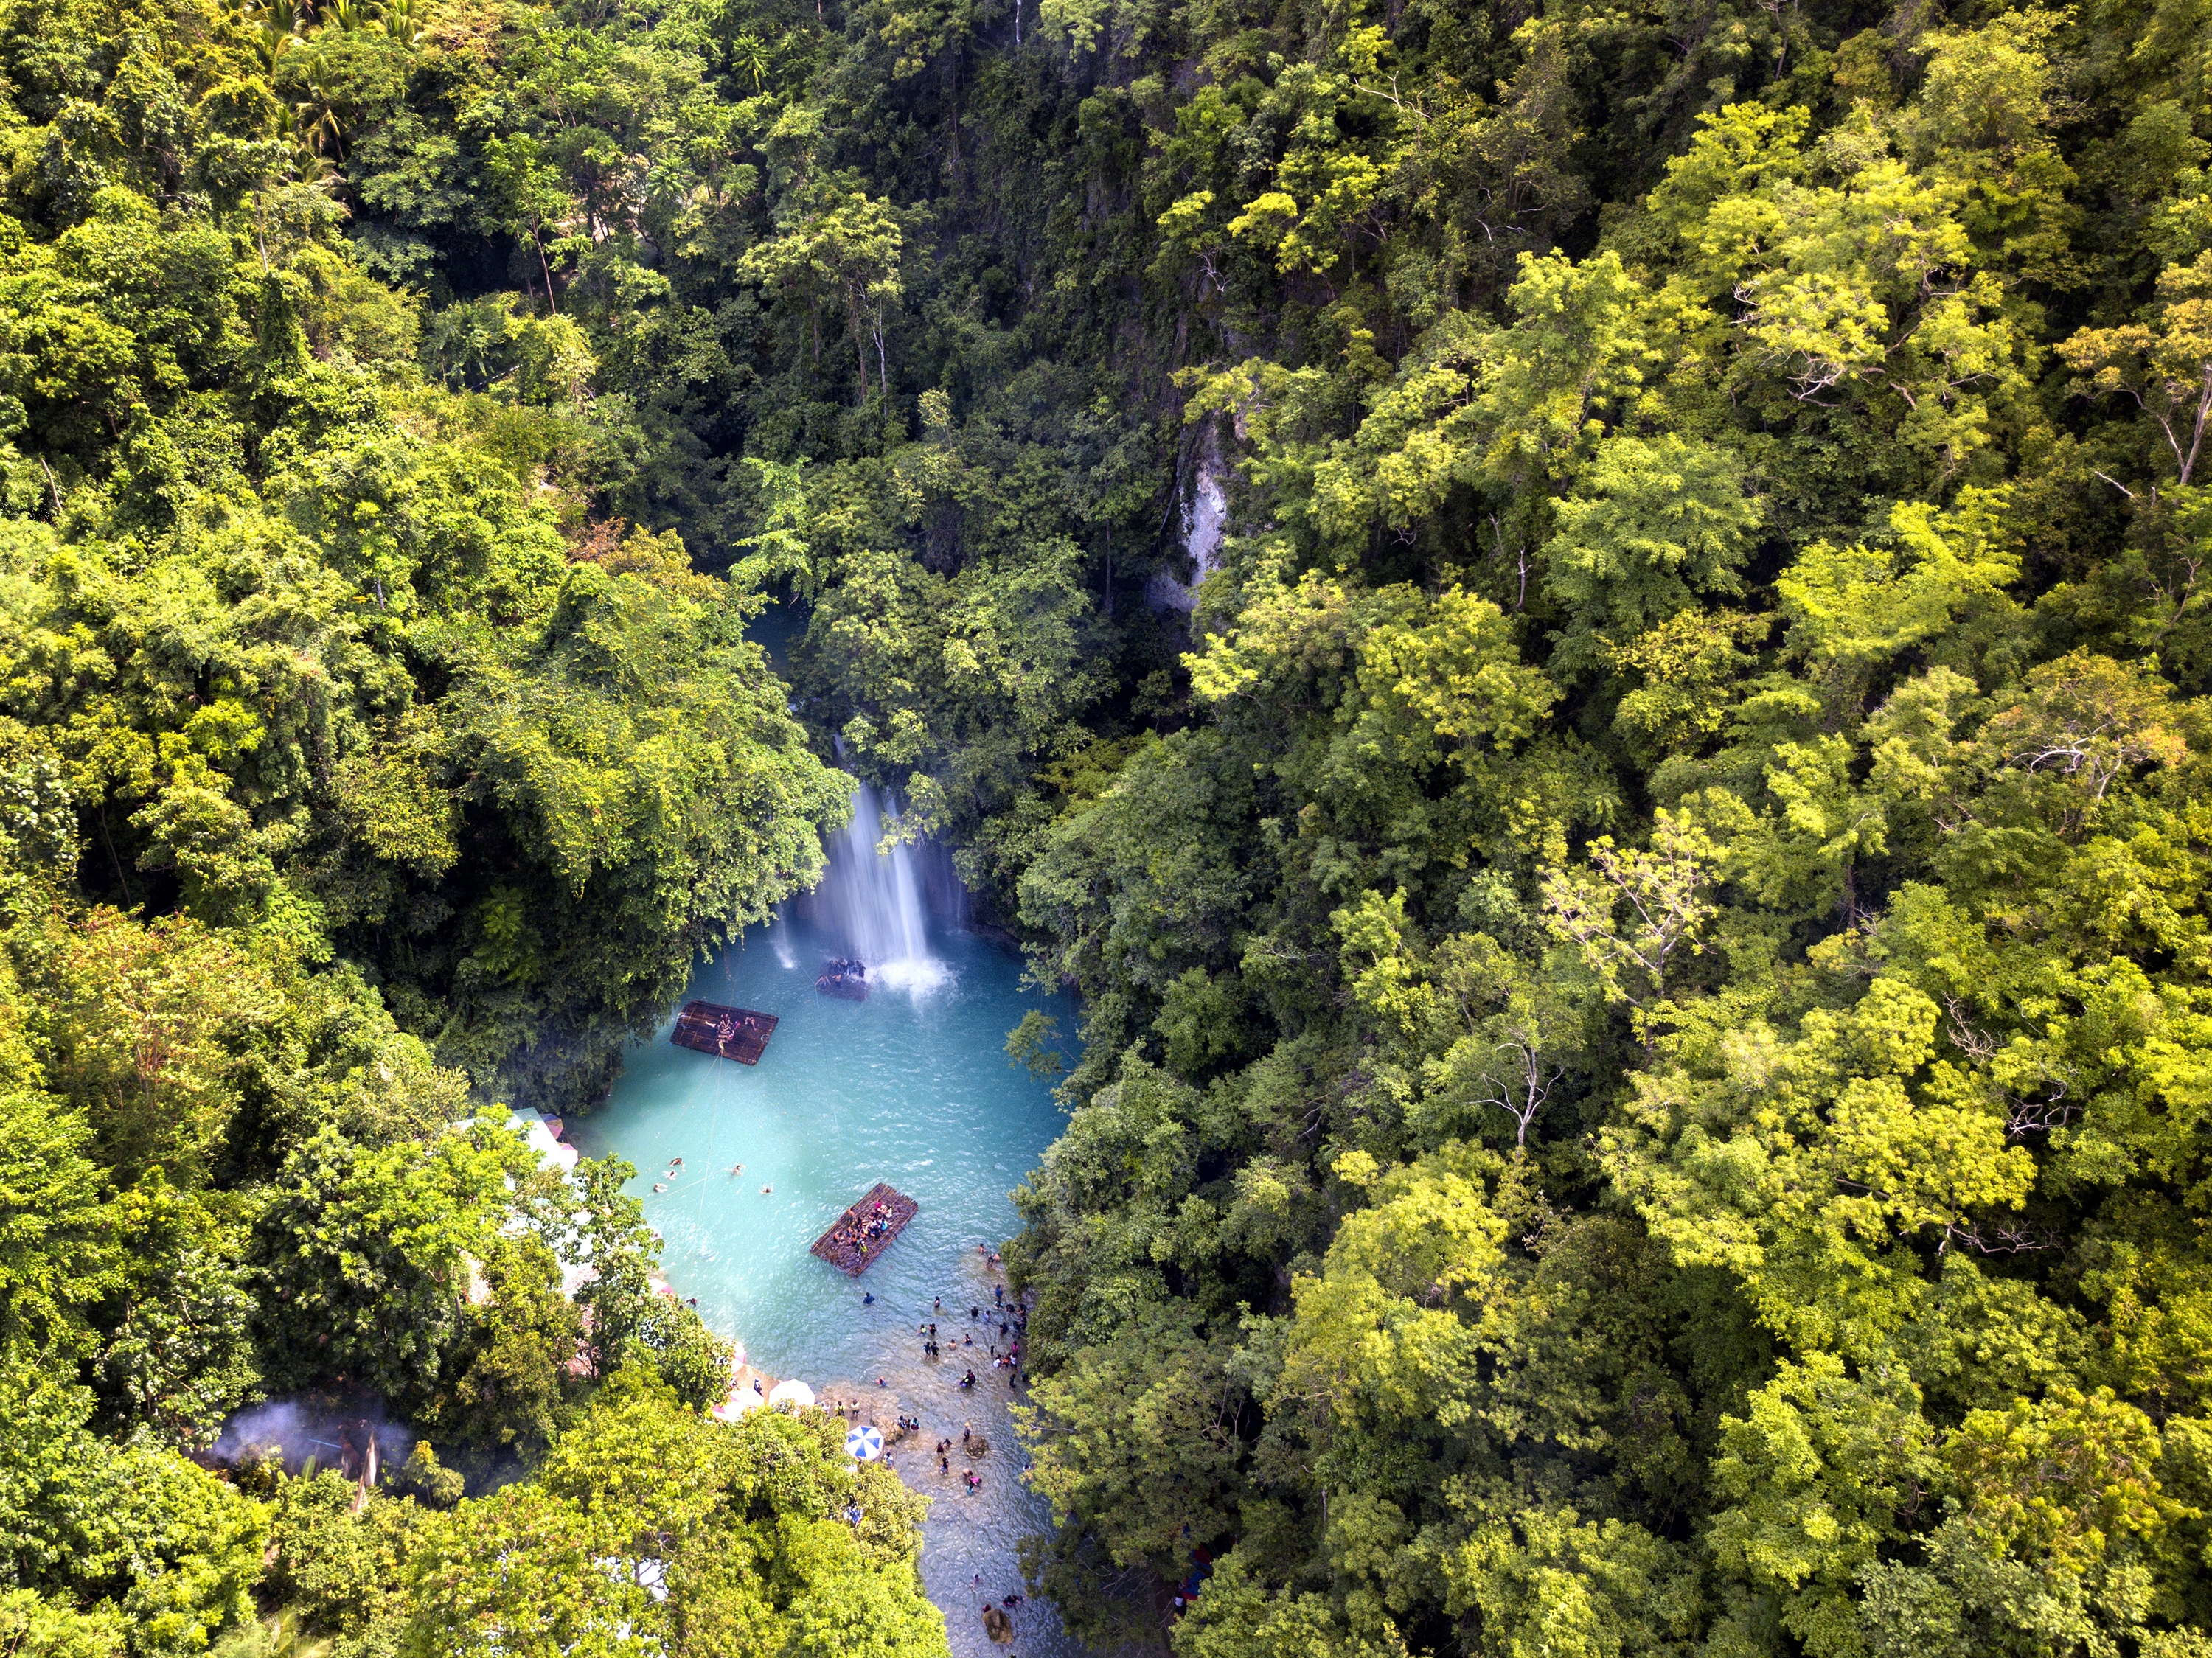 Kawasan Falls, one of the top tourist attractions in Cebu